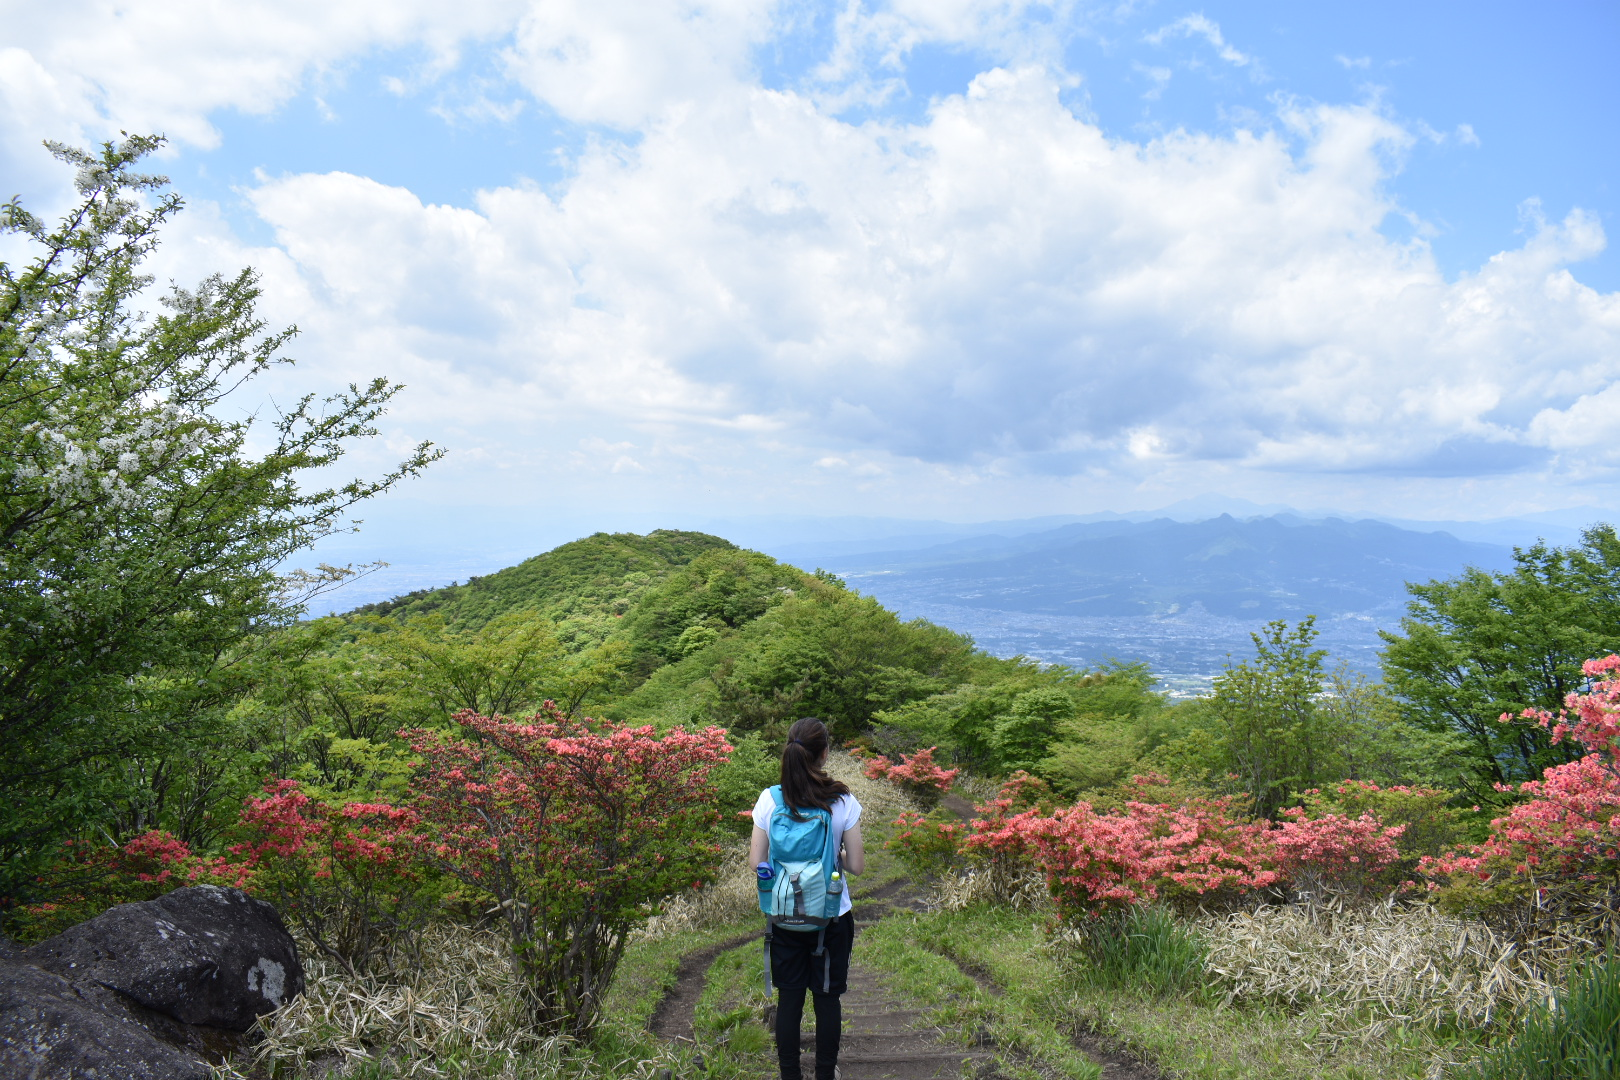 A hiker looks out at azaleas and a great view from Nabewari ridgeline